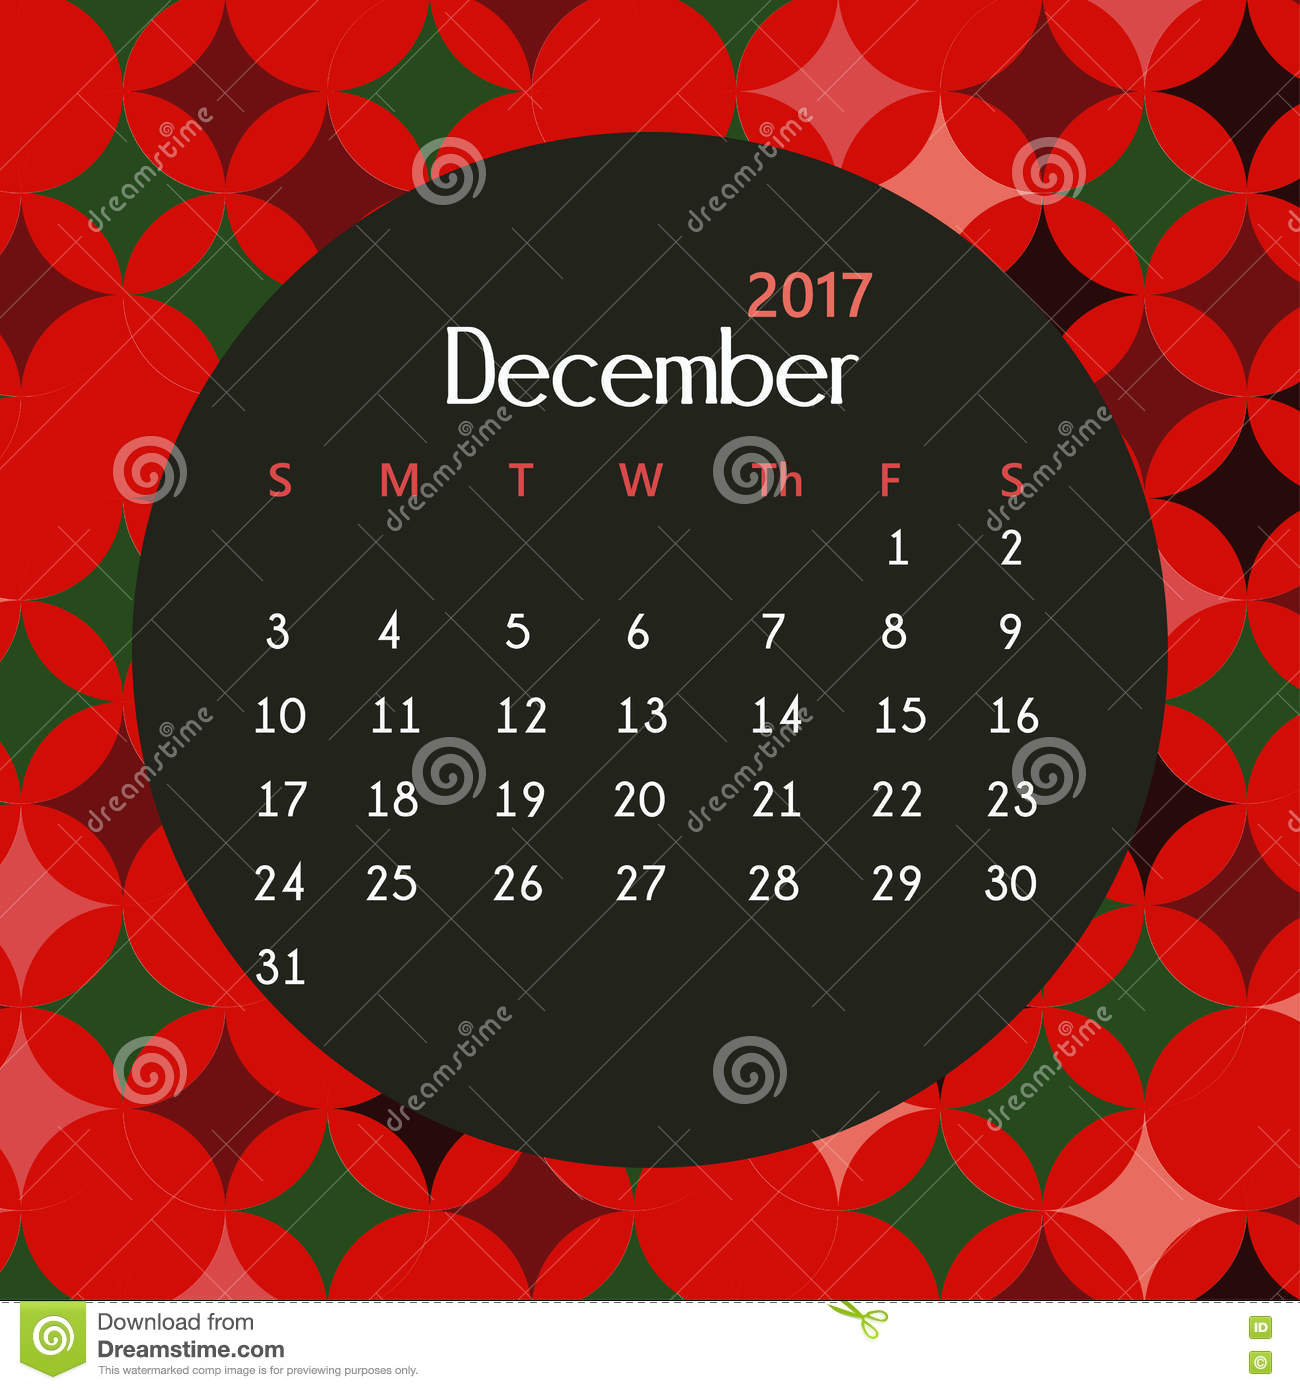 2017 December Calendar Design With Geometric Background ...